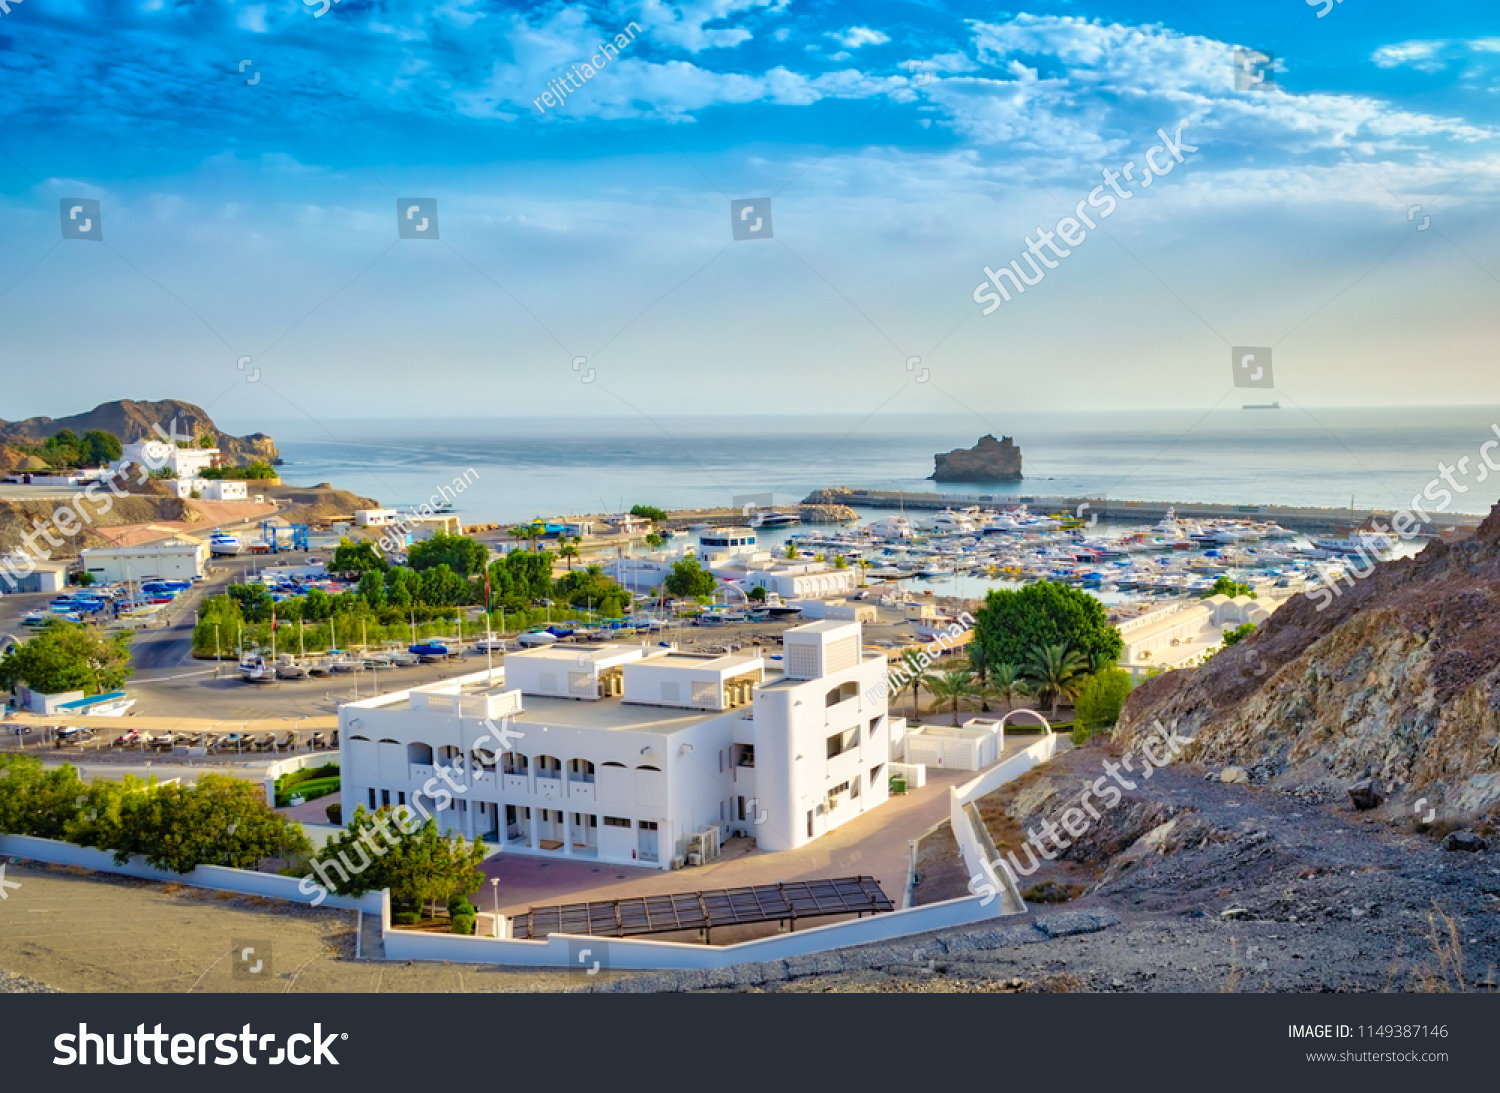 Top view of Oman seascape with blue sky and mountains.